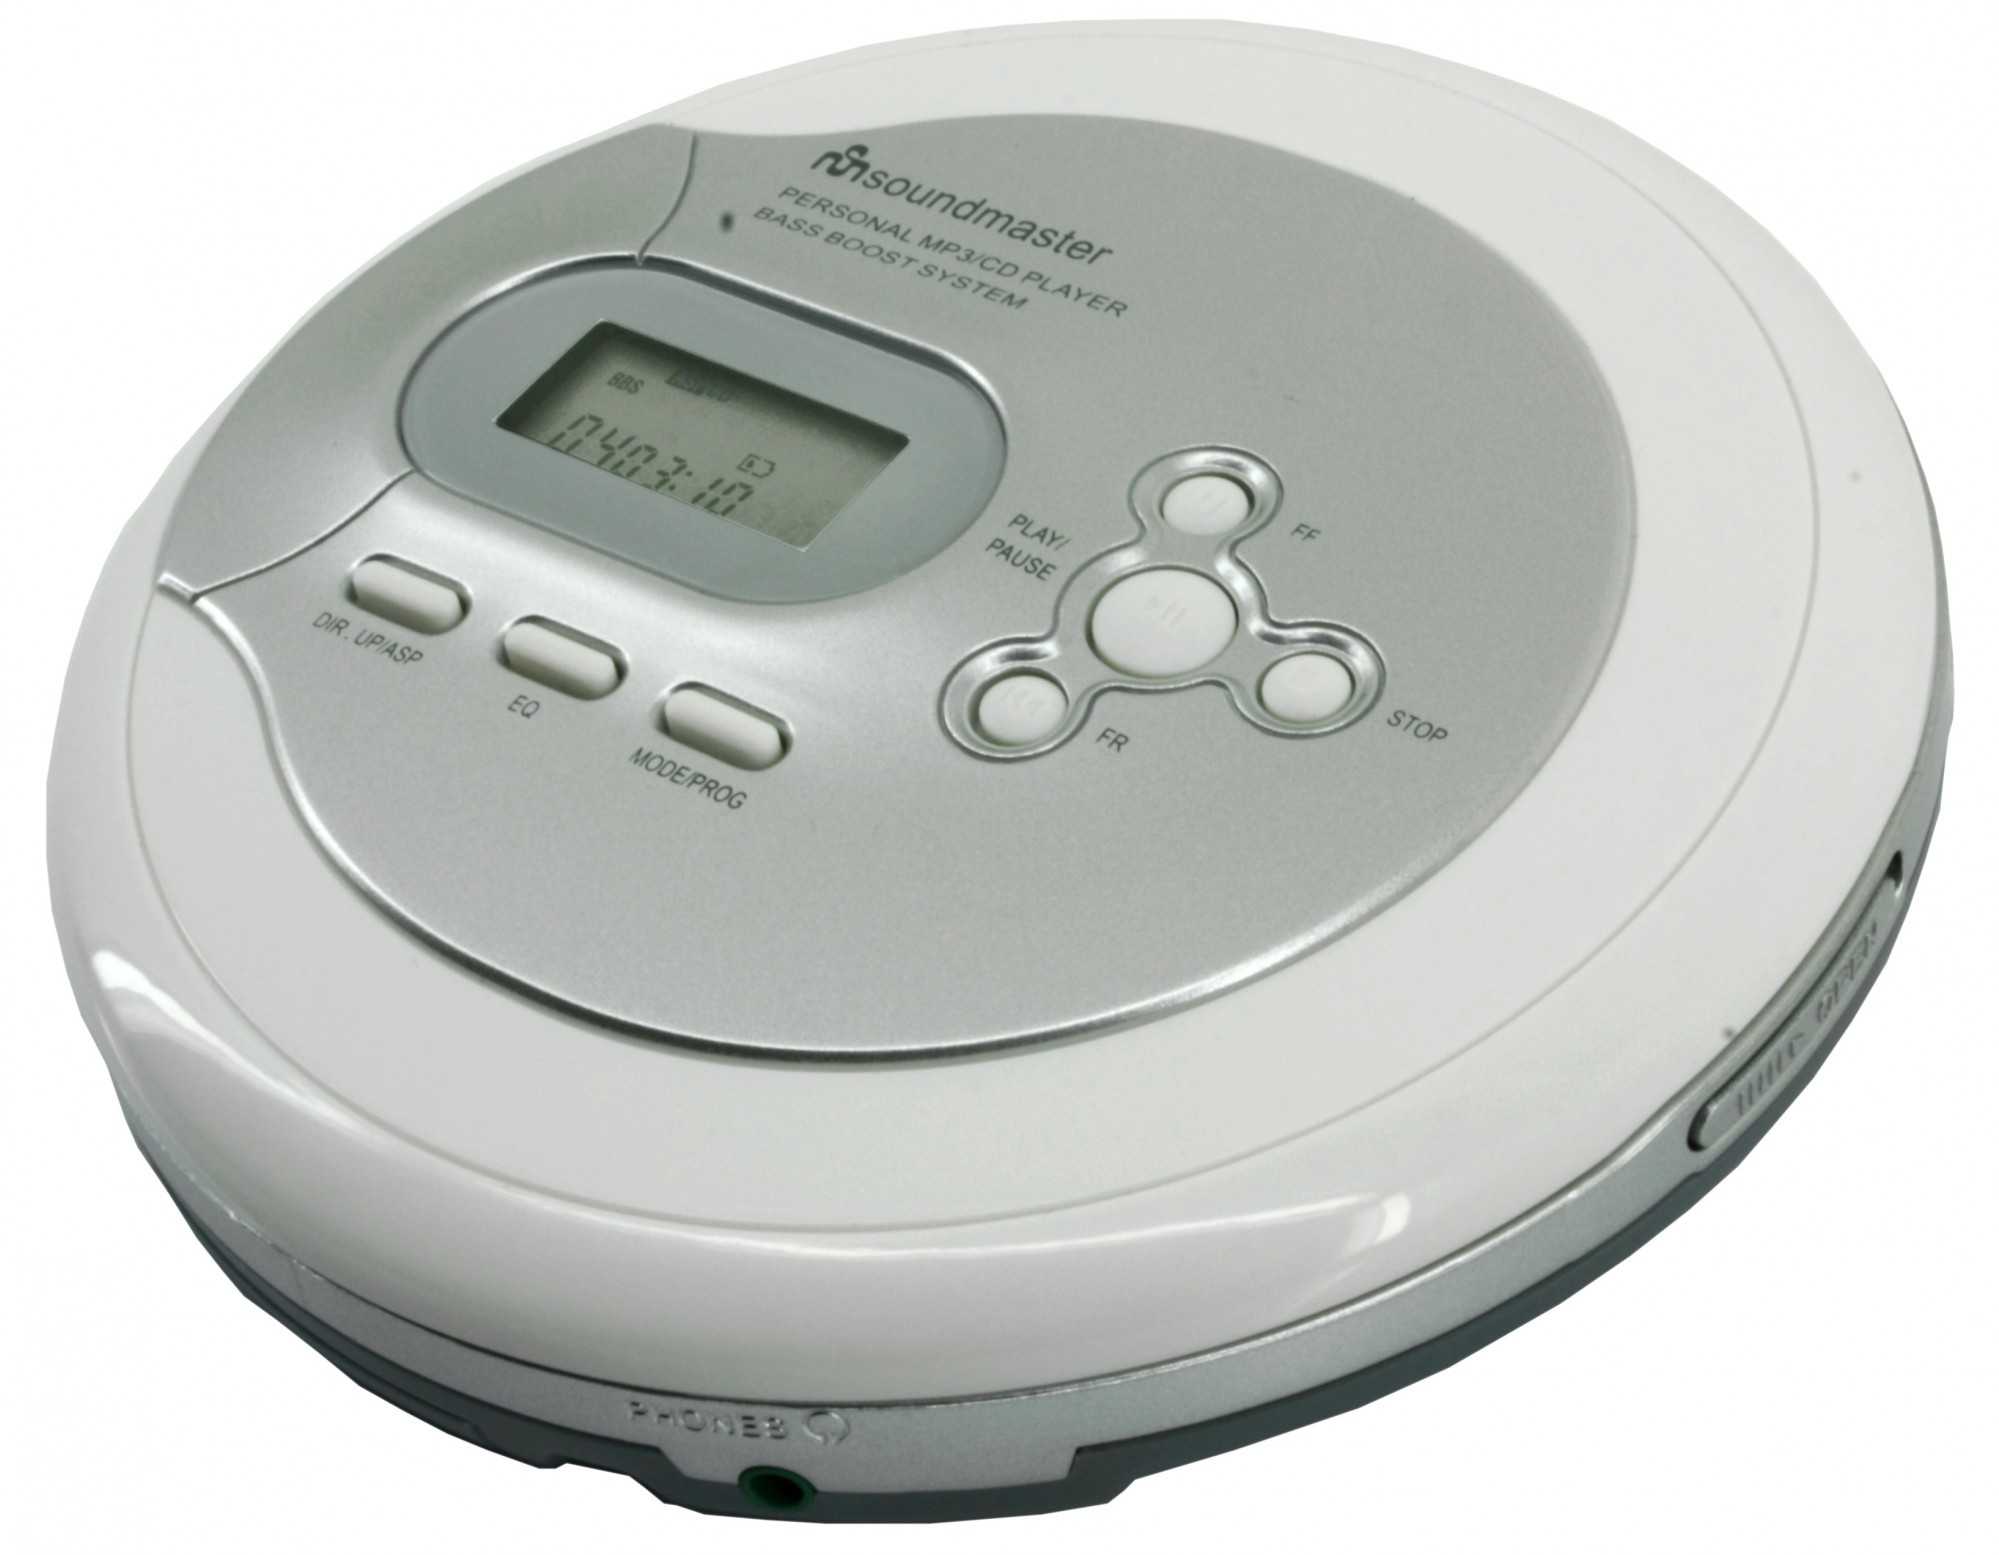 soundmaster cd9180 cd mp3 player with esp battery charger With cd player with resume function